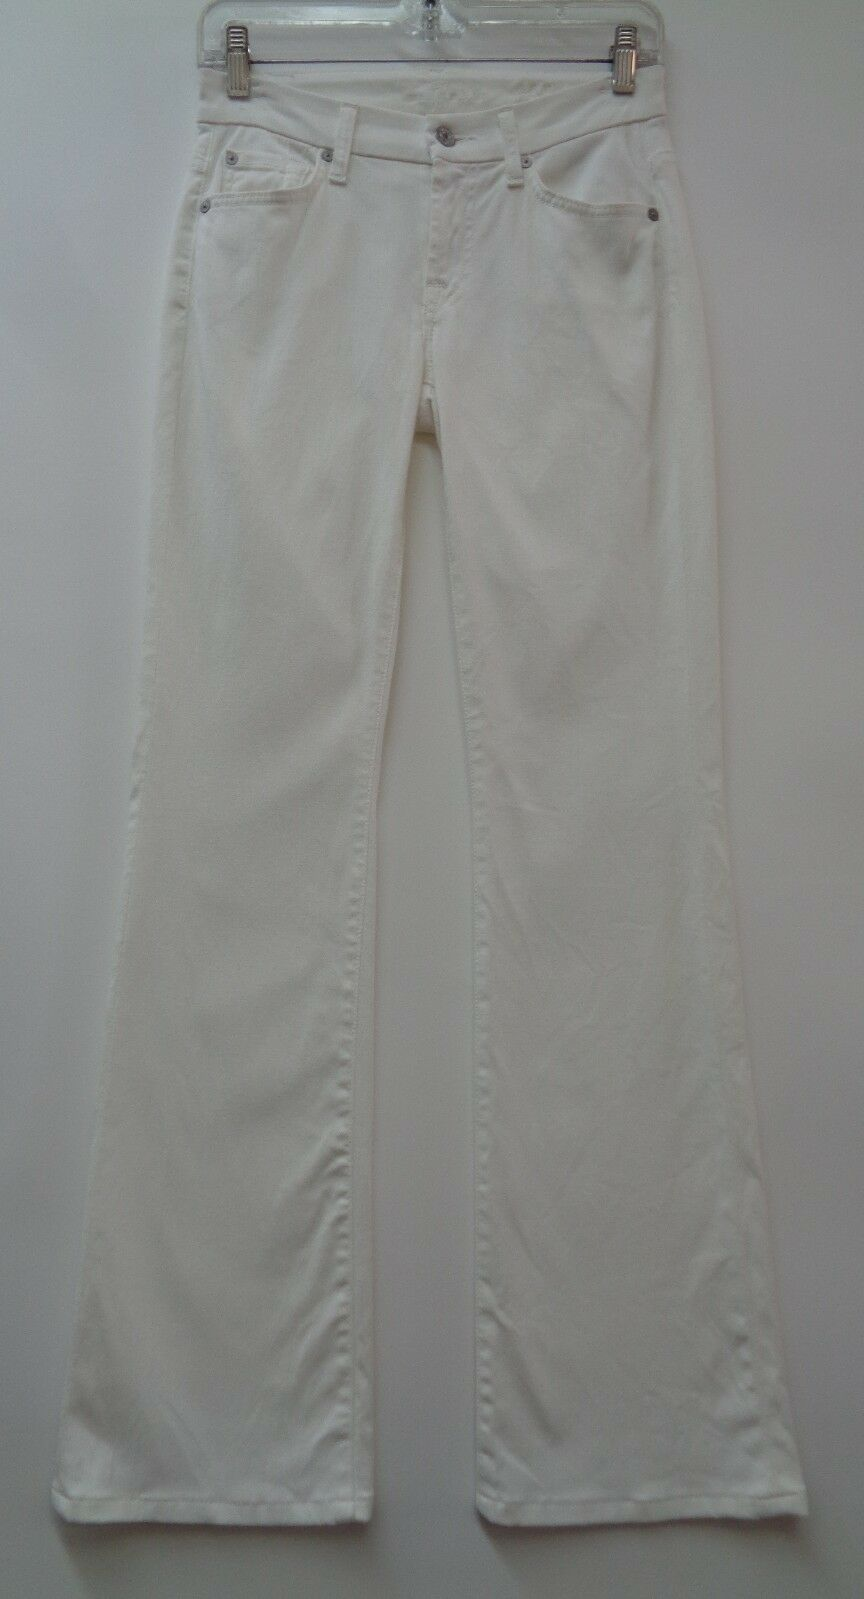 7 For All Mankind 24 White Denim Womens Jeans Pants Kimmie Boot Cut Stretch